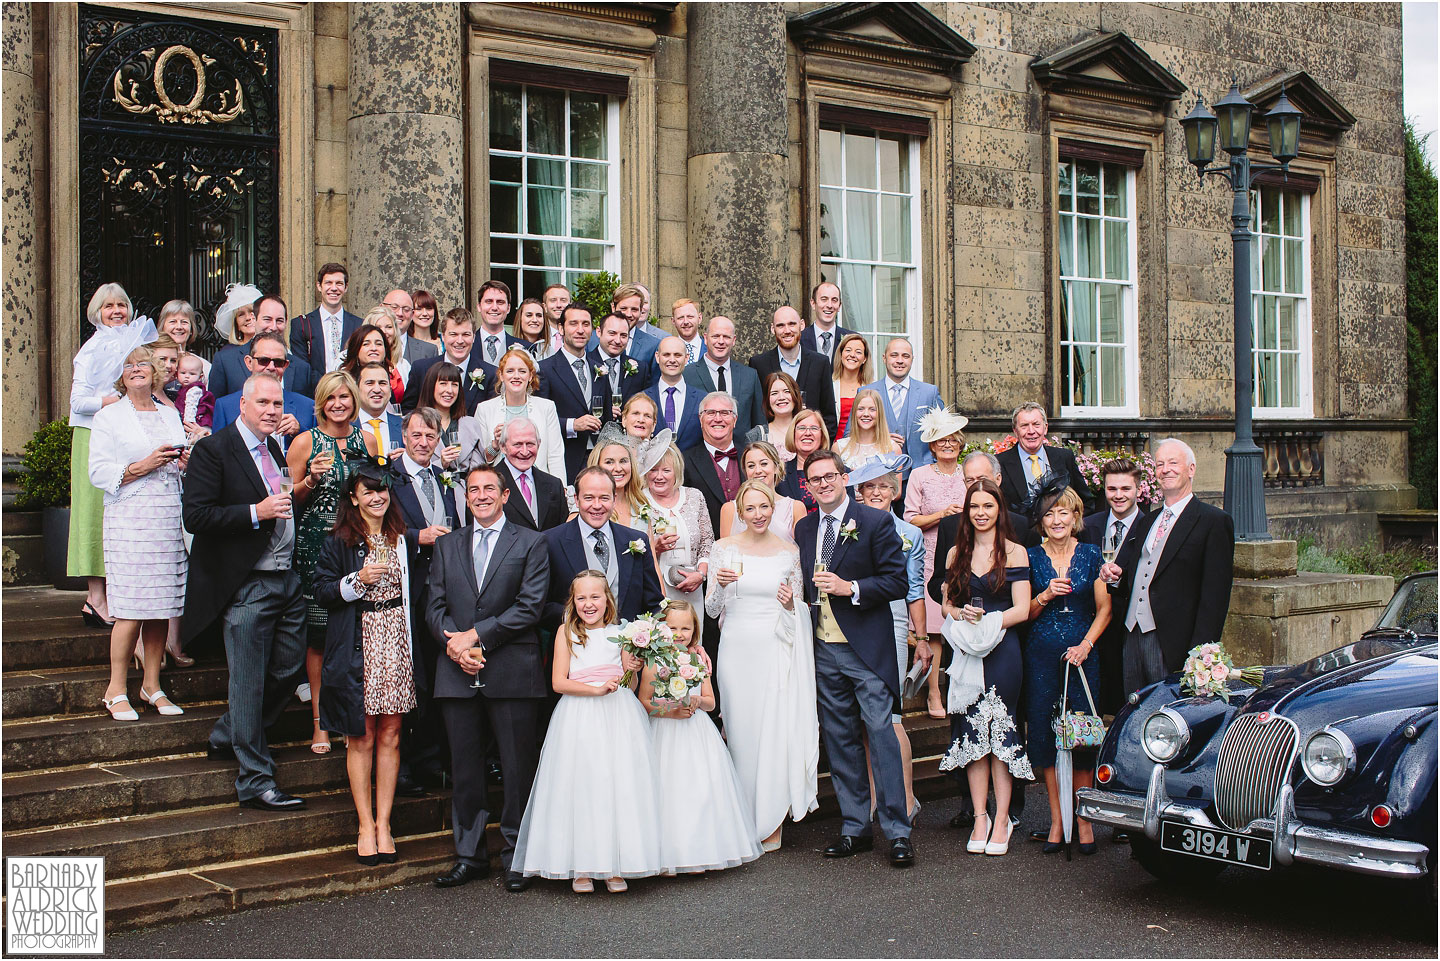 Denton Hall Ilkley wedding photography, Classic everyone wedding groupshot